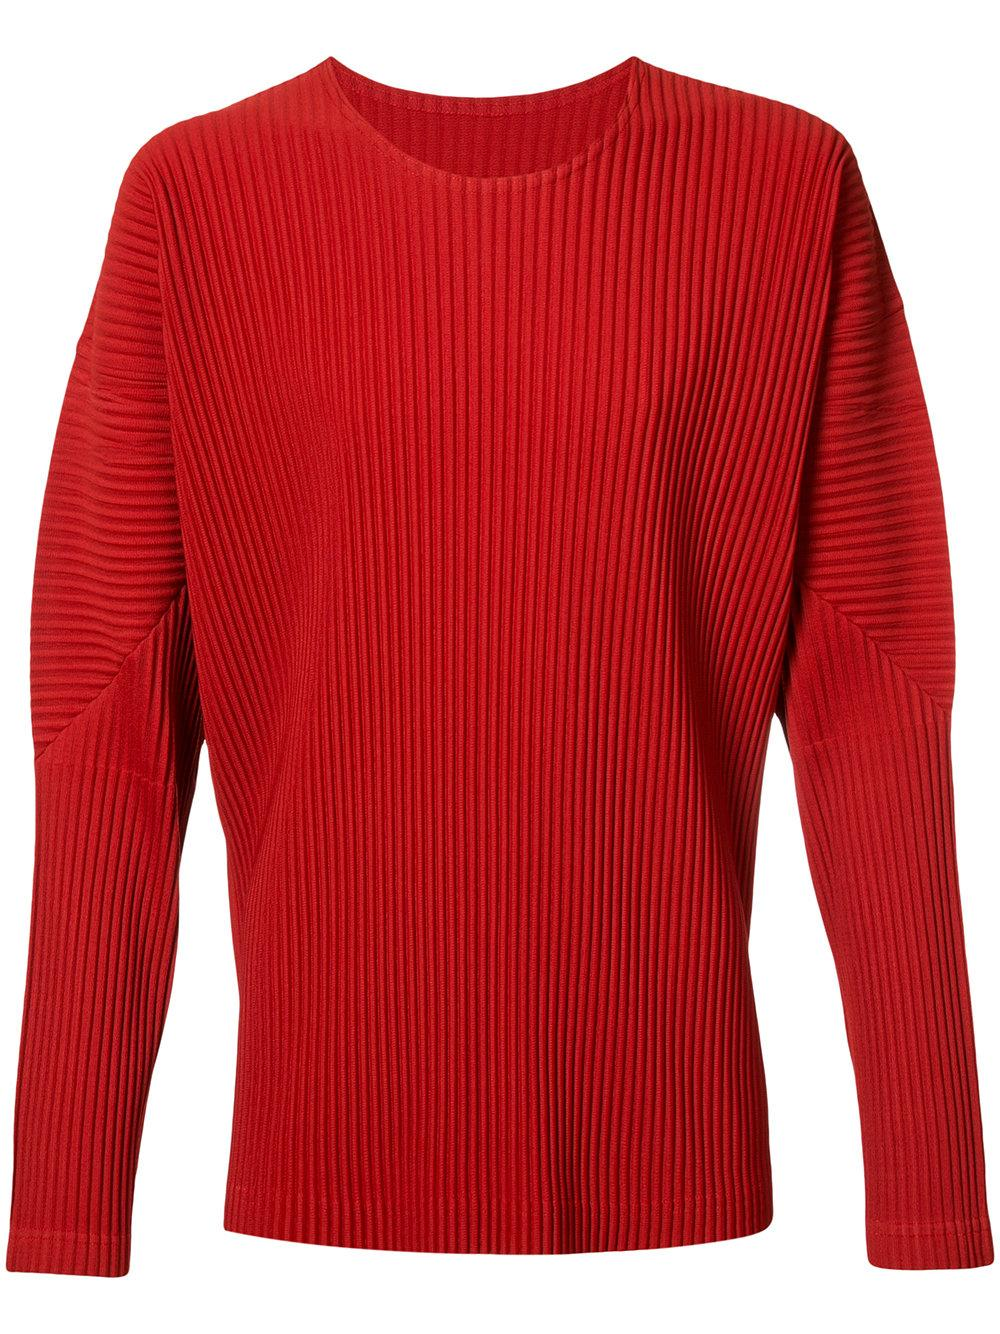 lyst homme pliss issey miyake long sleeve t shirt in red for men. Black Bedroom Furniture Sets. Home Design Ideas